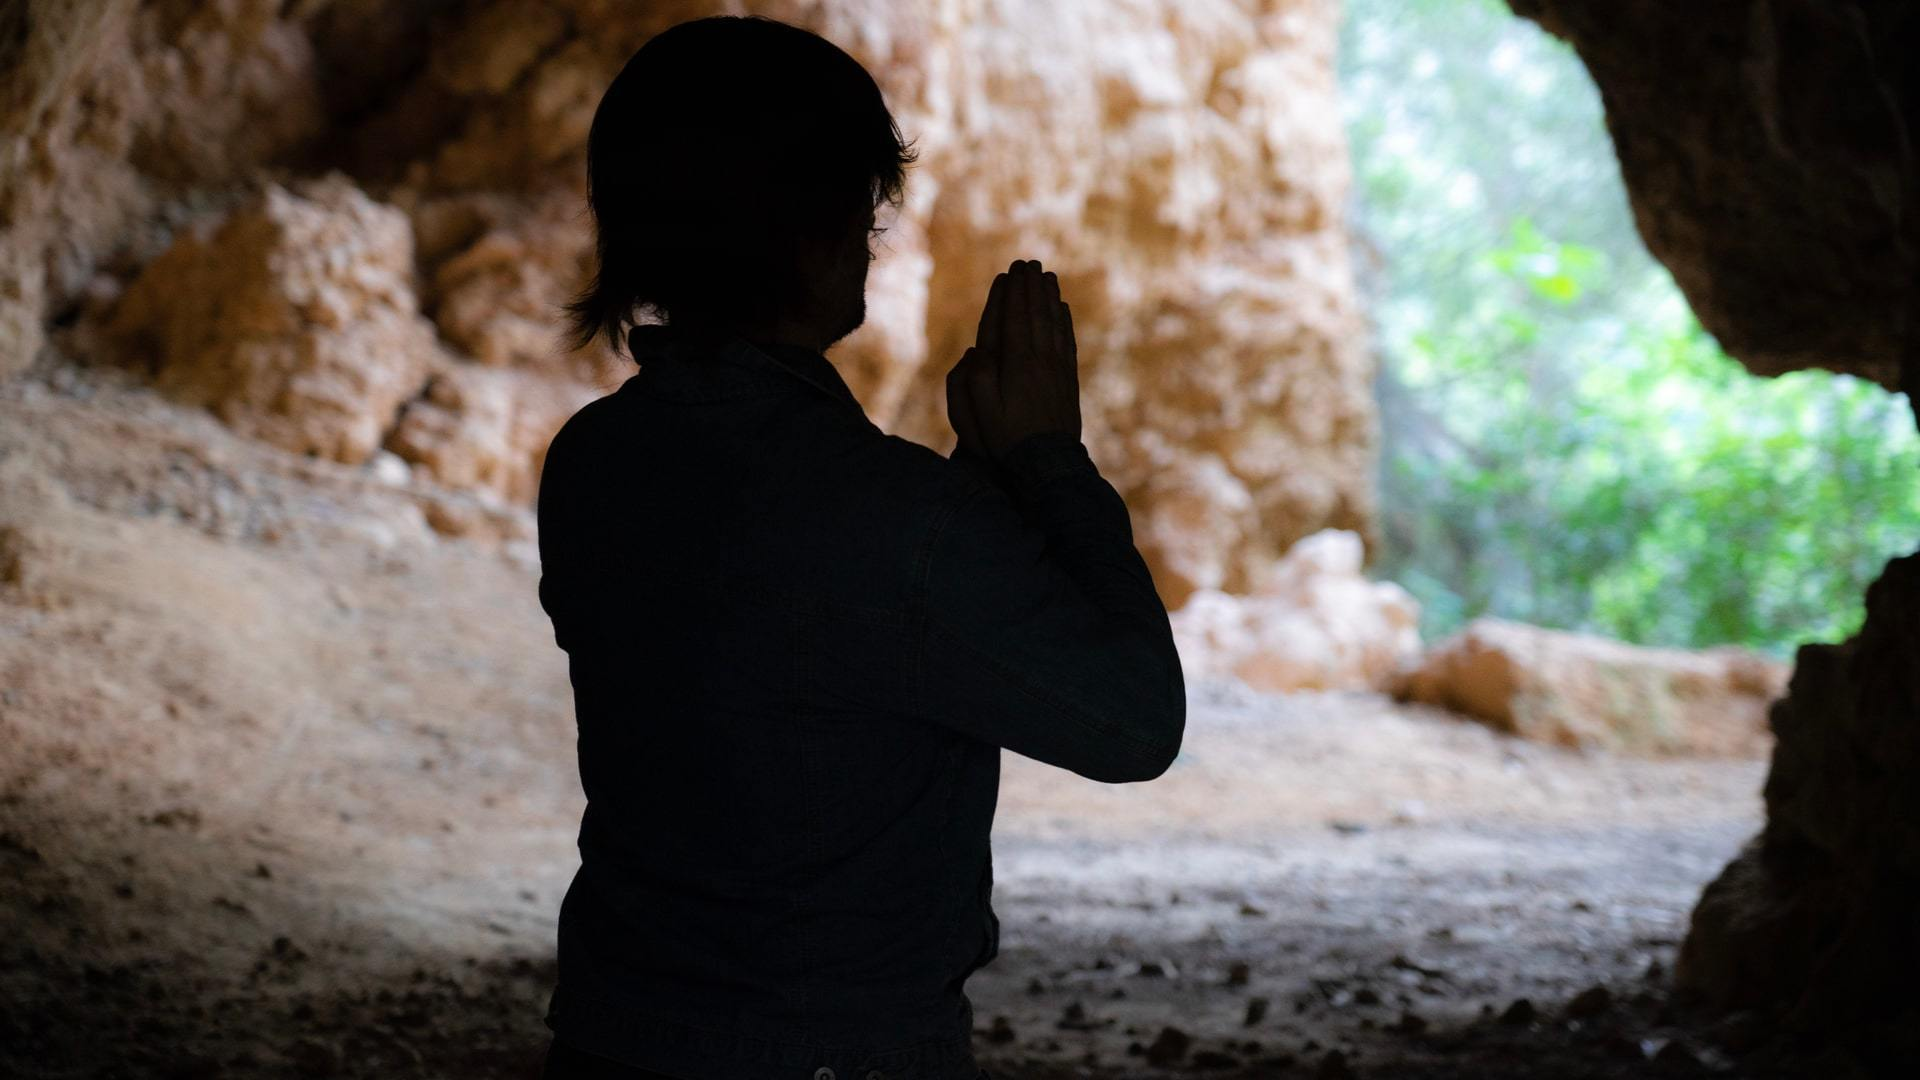 Man praying in cave Mallorca min